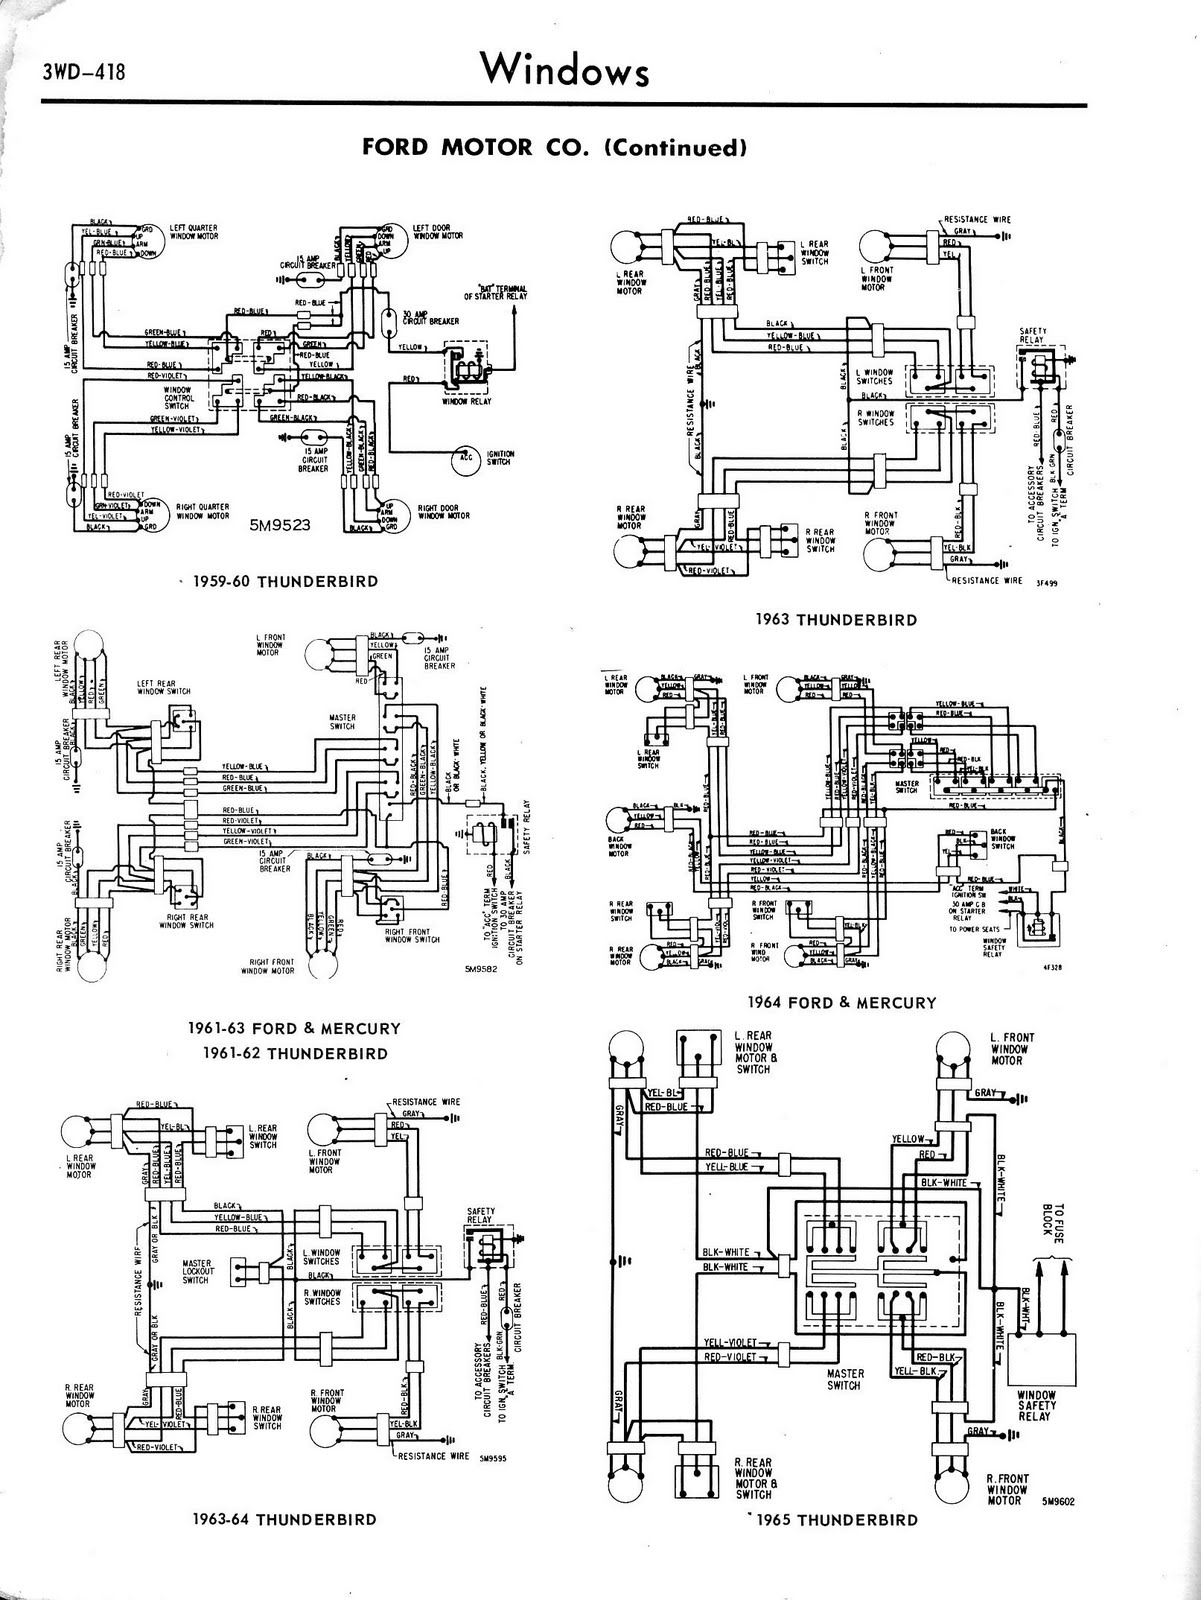 1965 ford thunderbird wiring diagram eTiVnLI 1965 ford thunderbird wiring diagram image details 1965 Thunderbird Window Regulator at virtualis.co